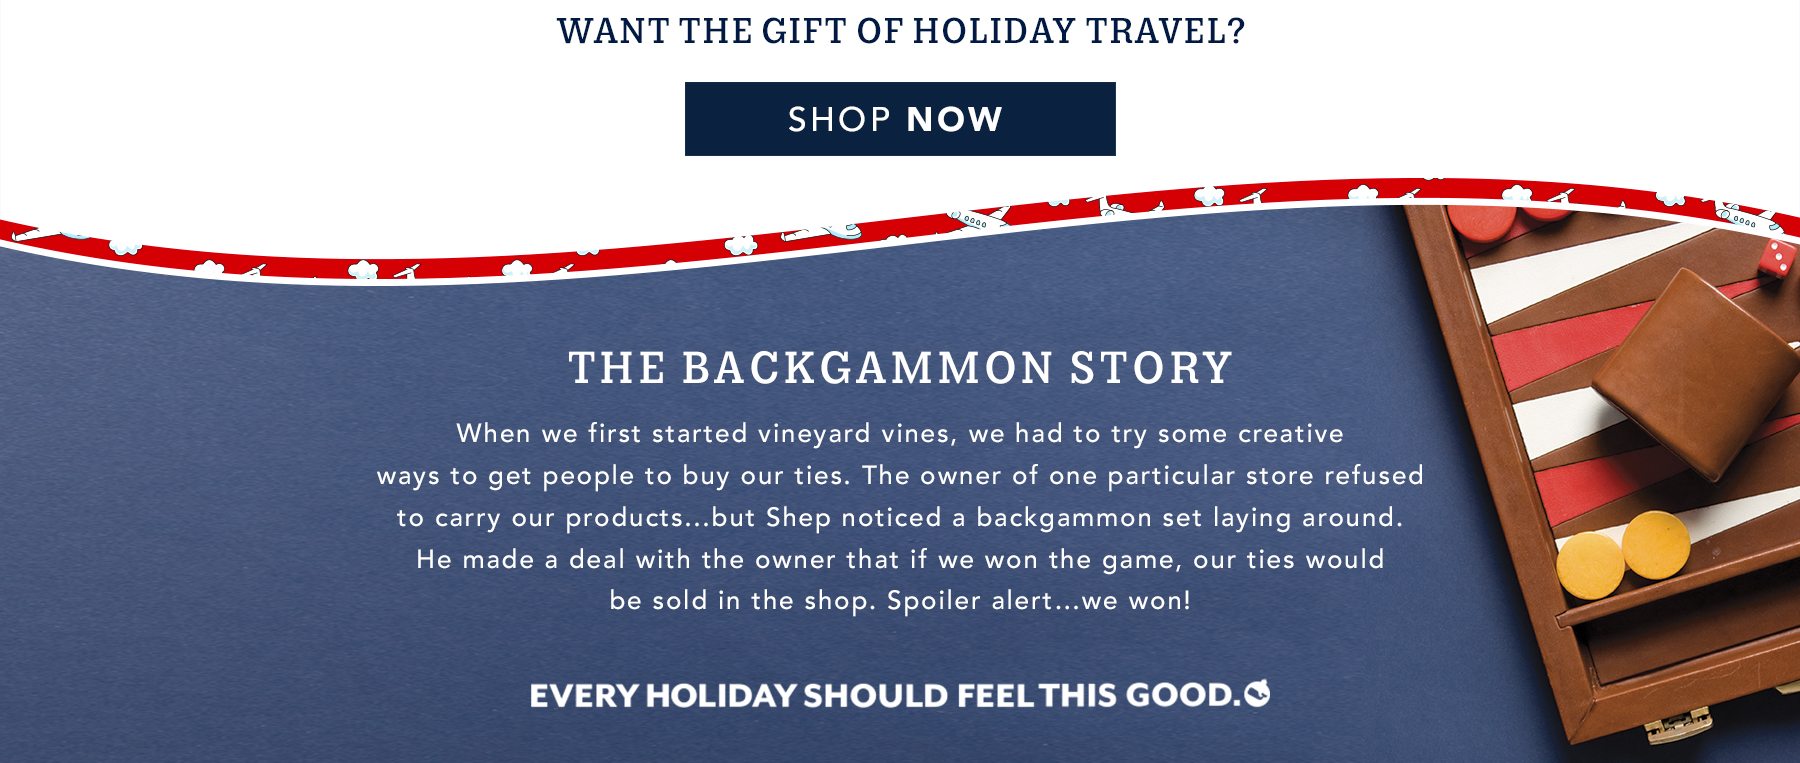 Want the gift of holiday travel? Shop now.